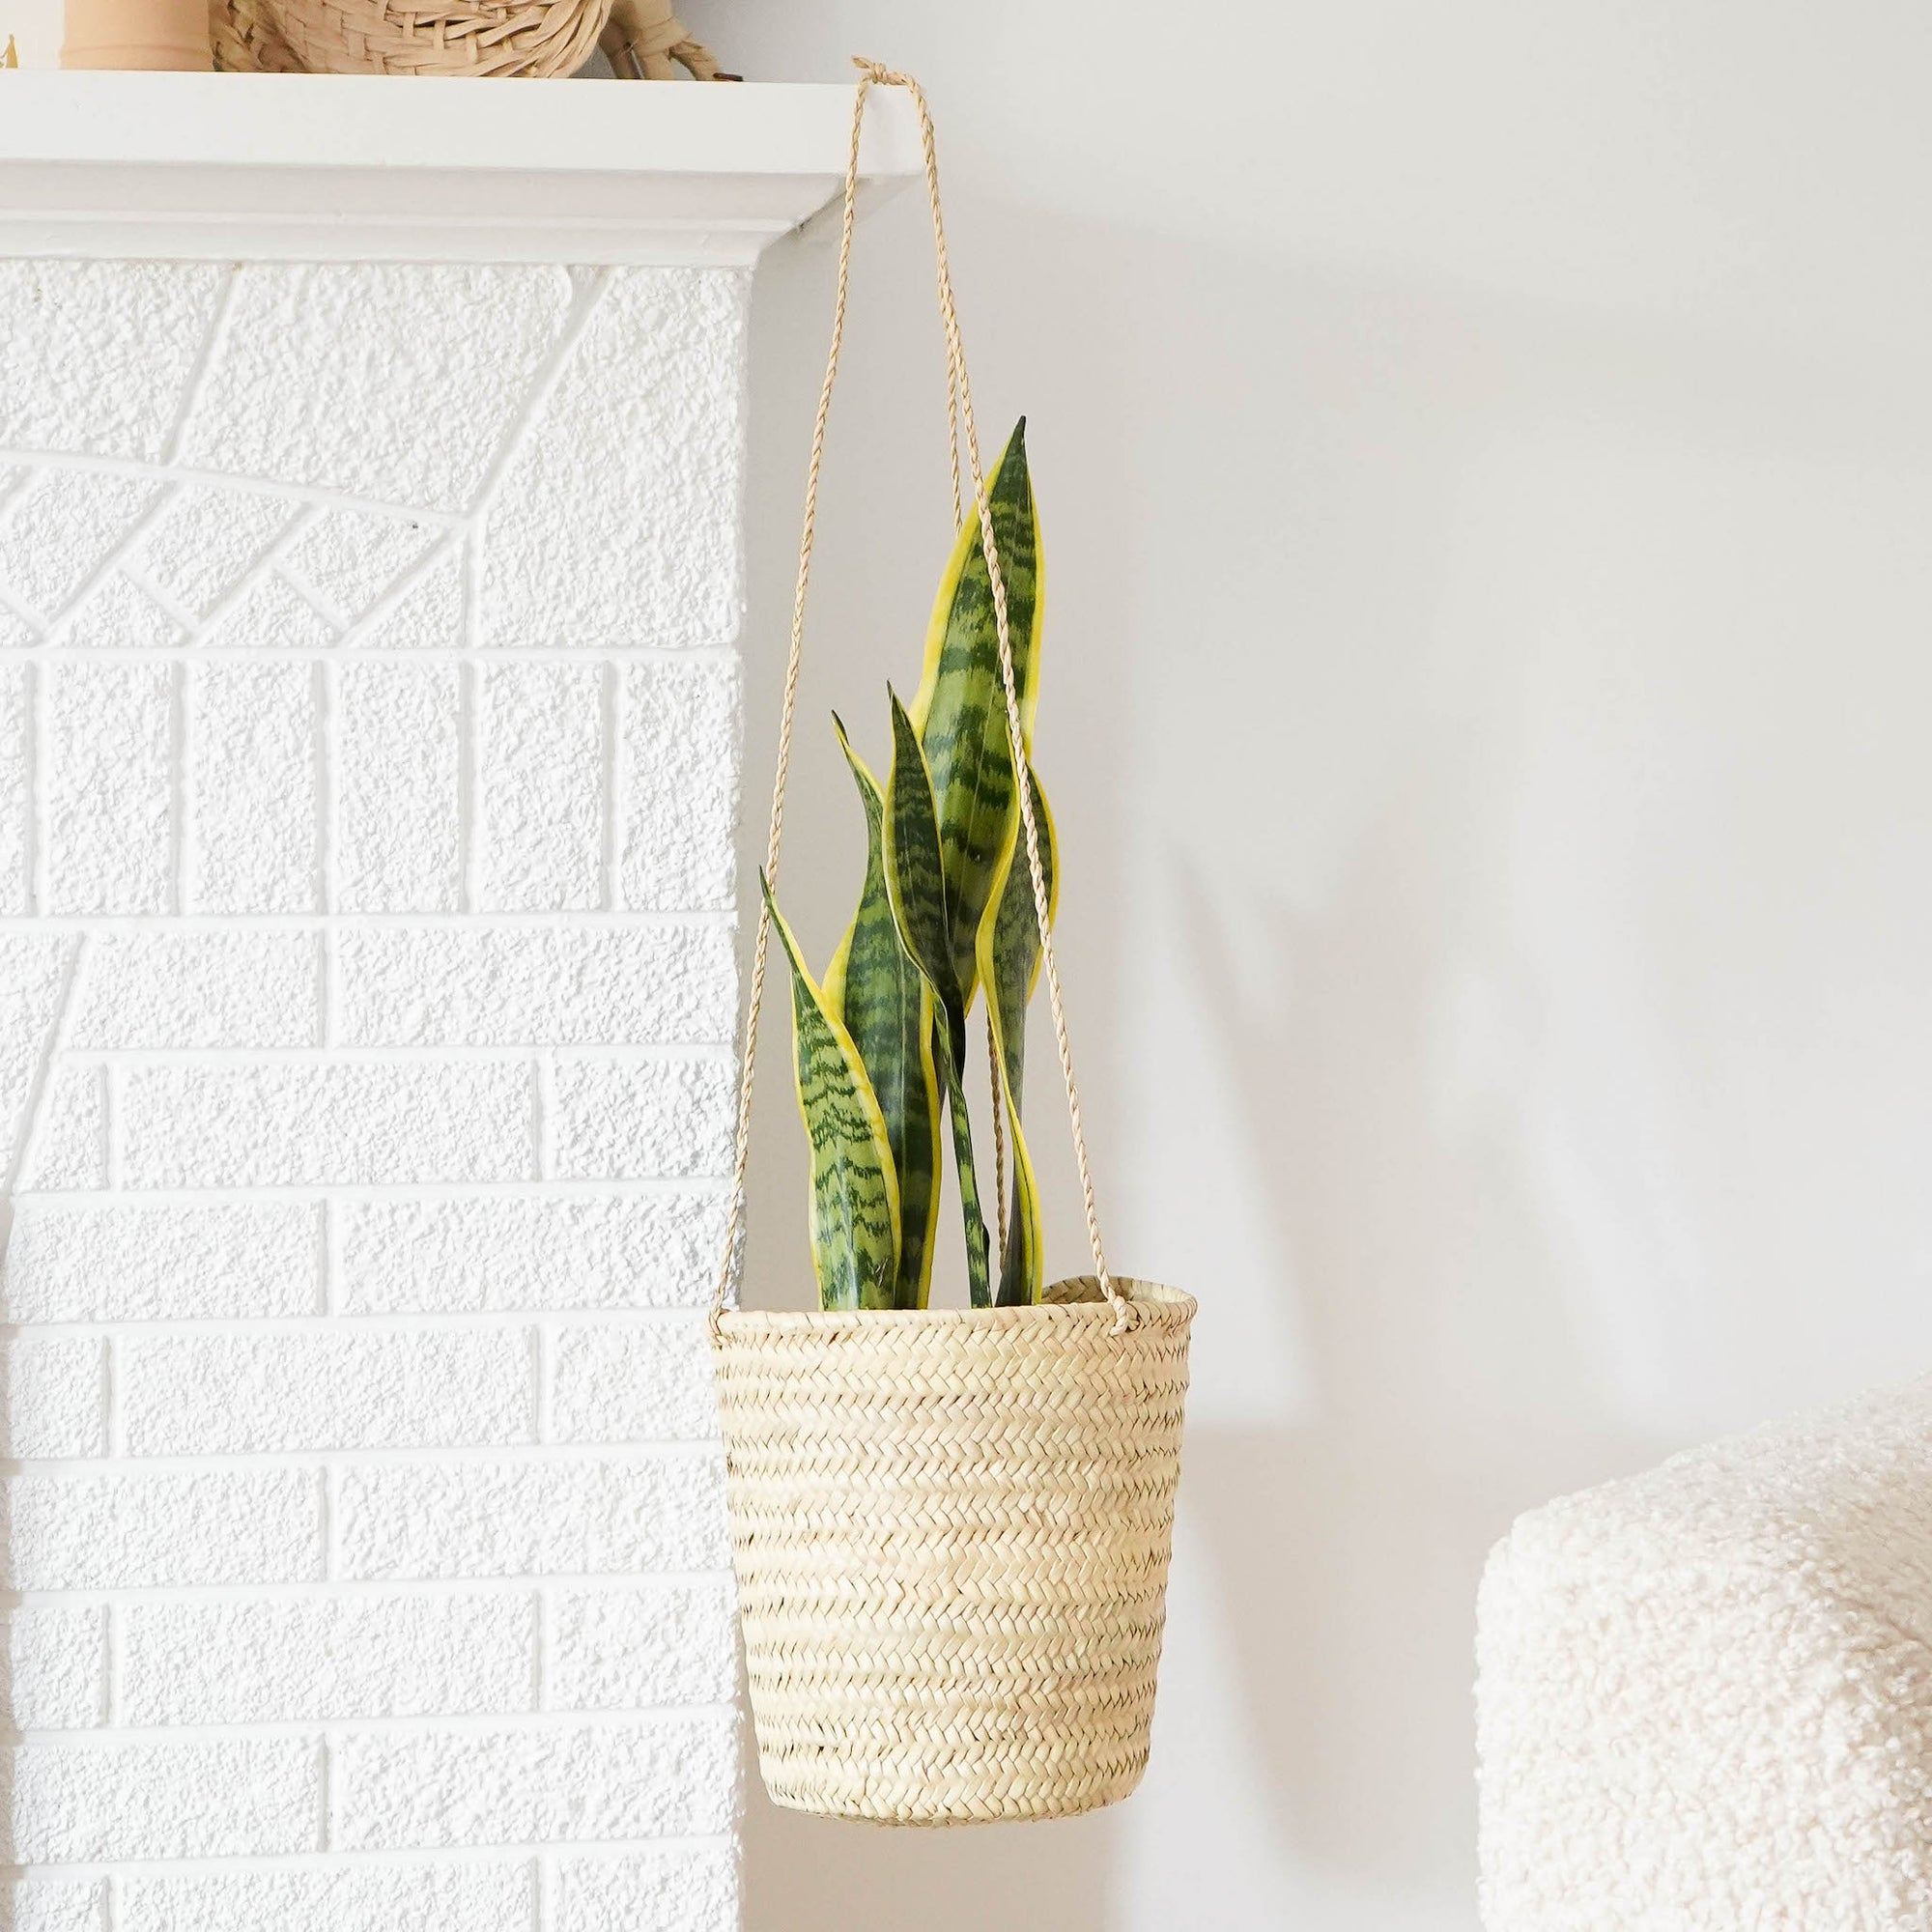 Straw planter holding a snake plant